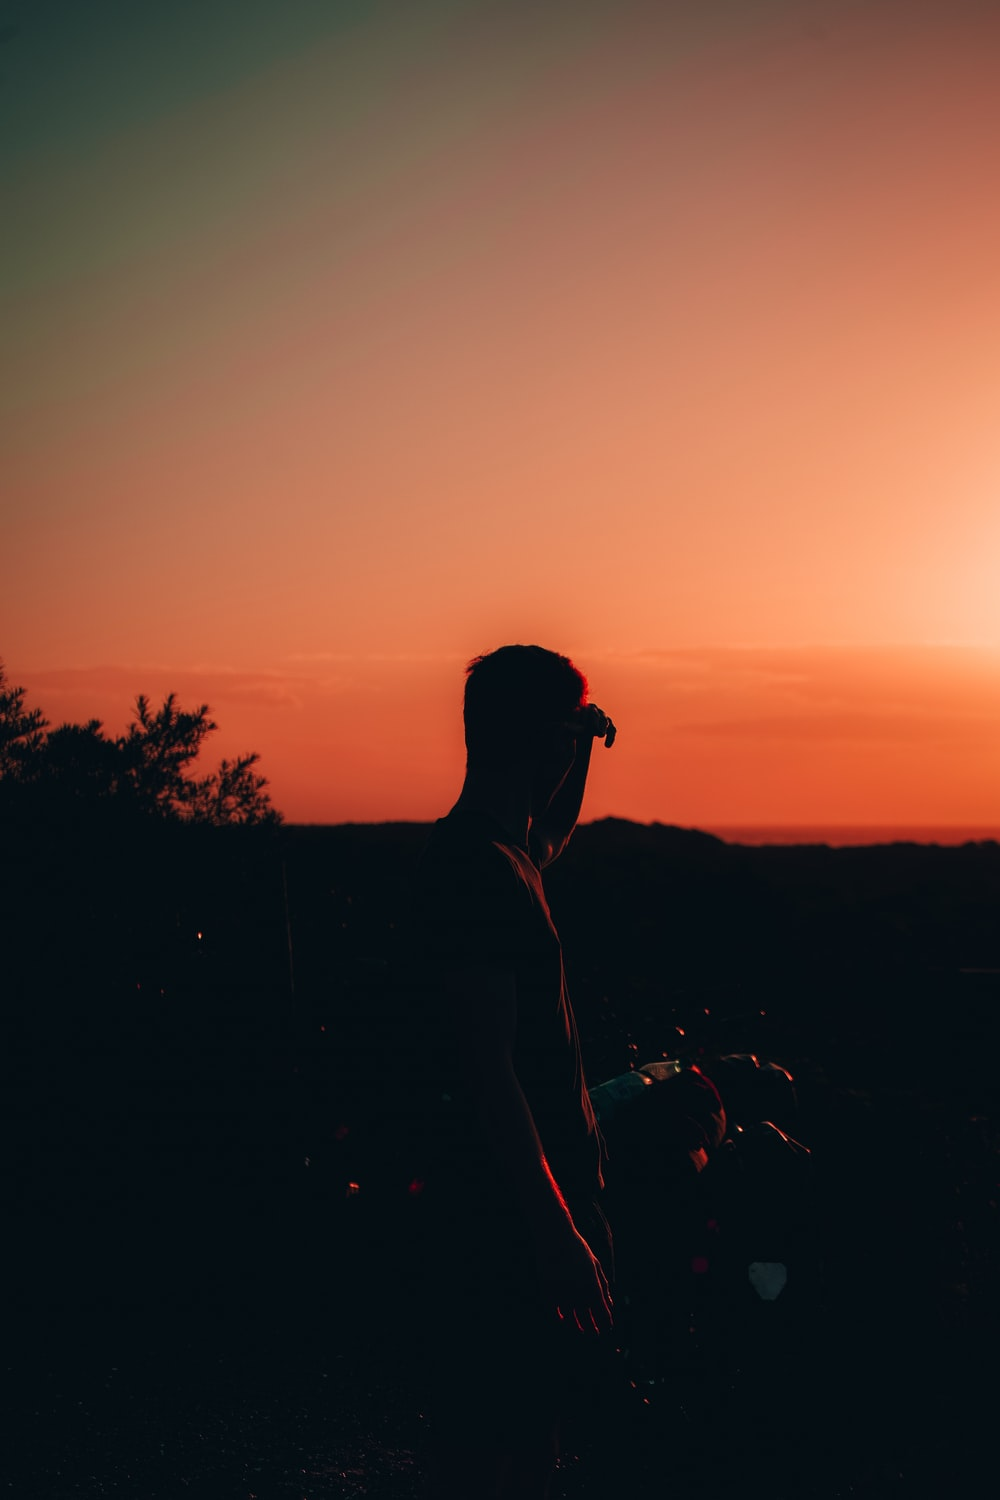 silhouette of man wearing sunglasses and cap during sunset